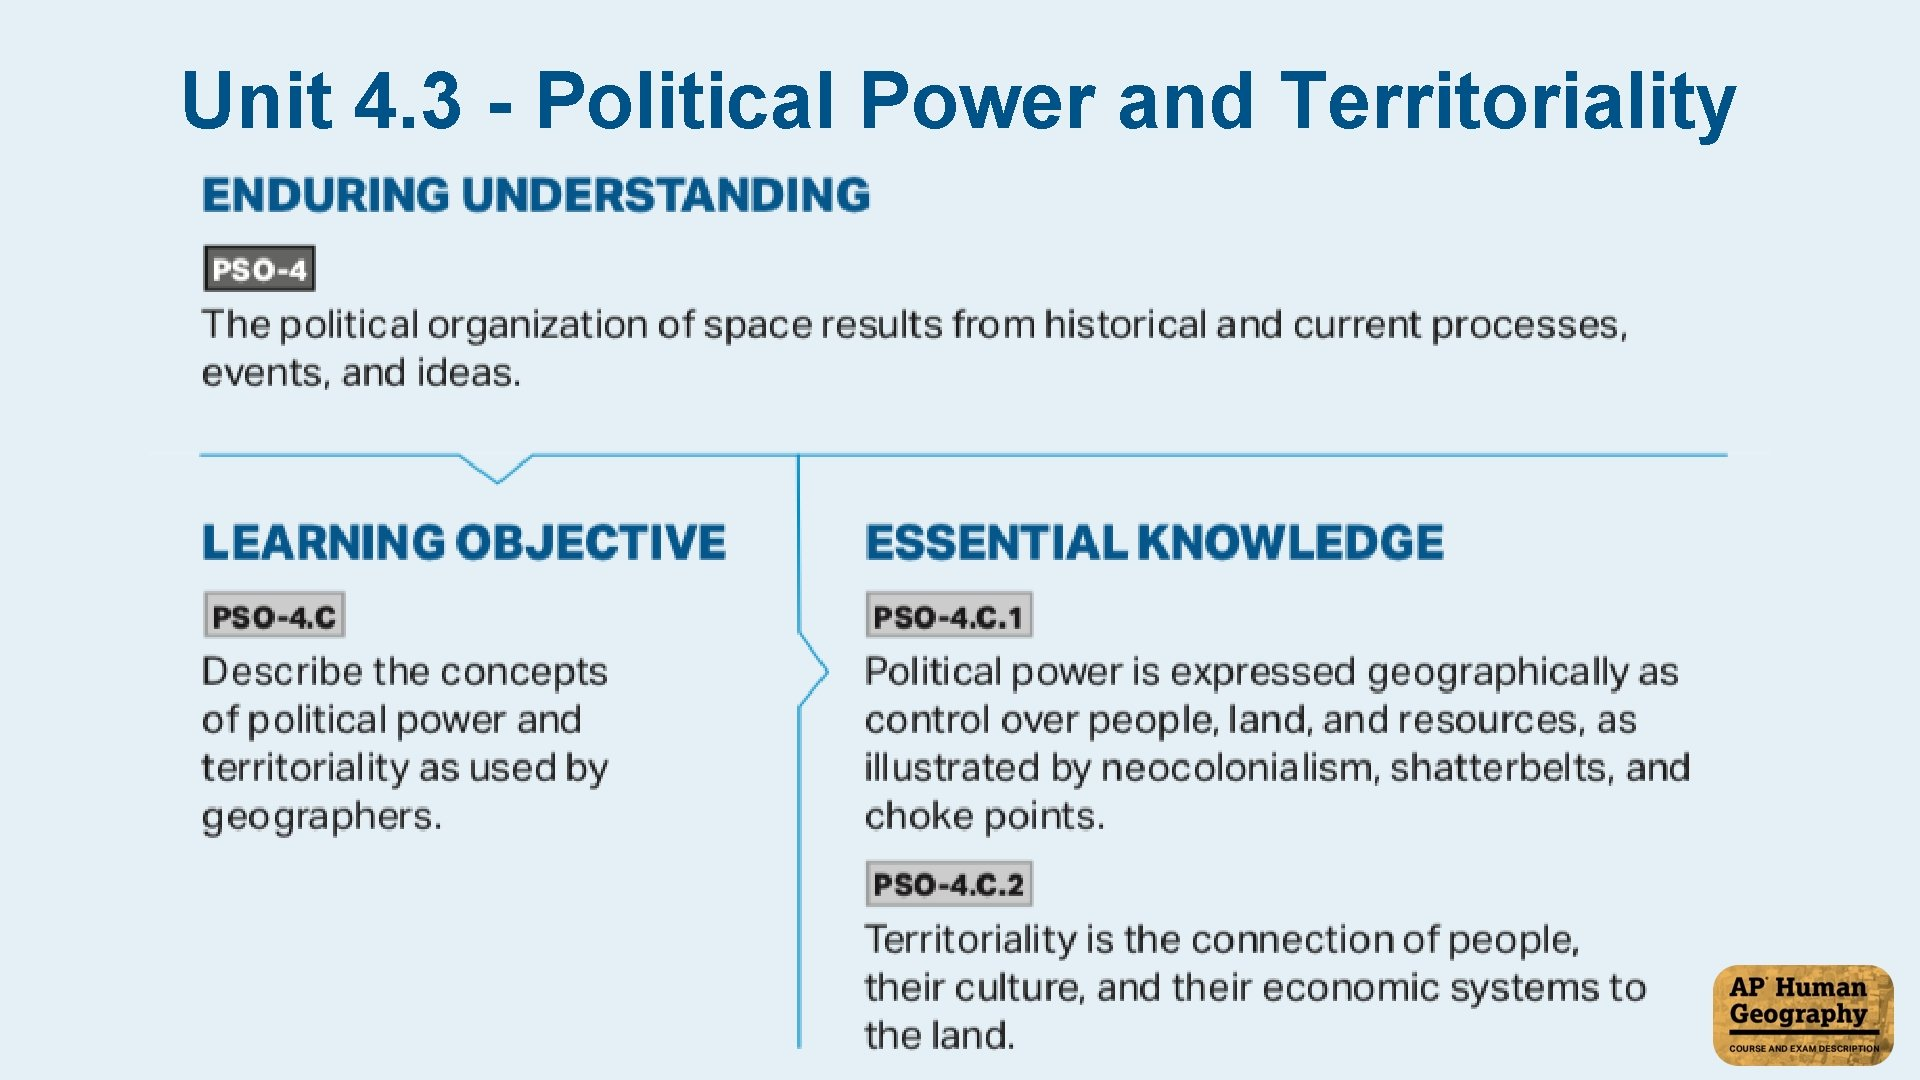 Unit 4. 3 - Political Power and Territoriality